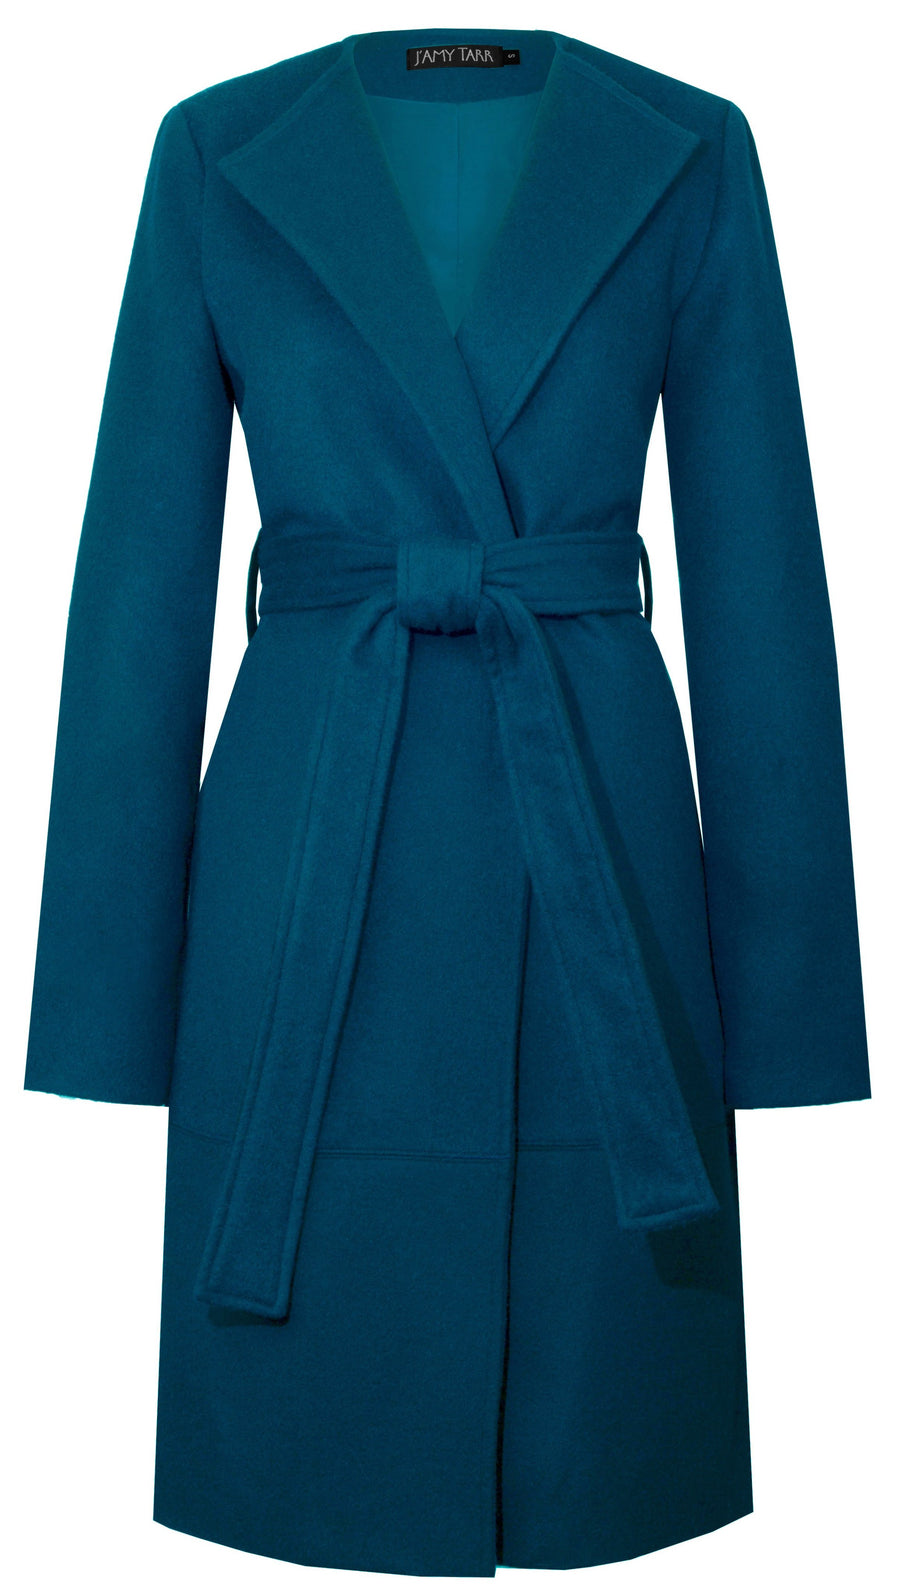 The Blanket Coat in Peacock